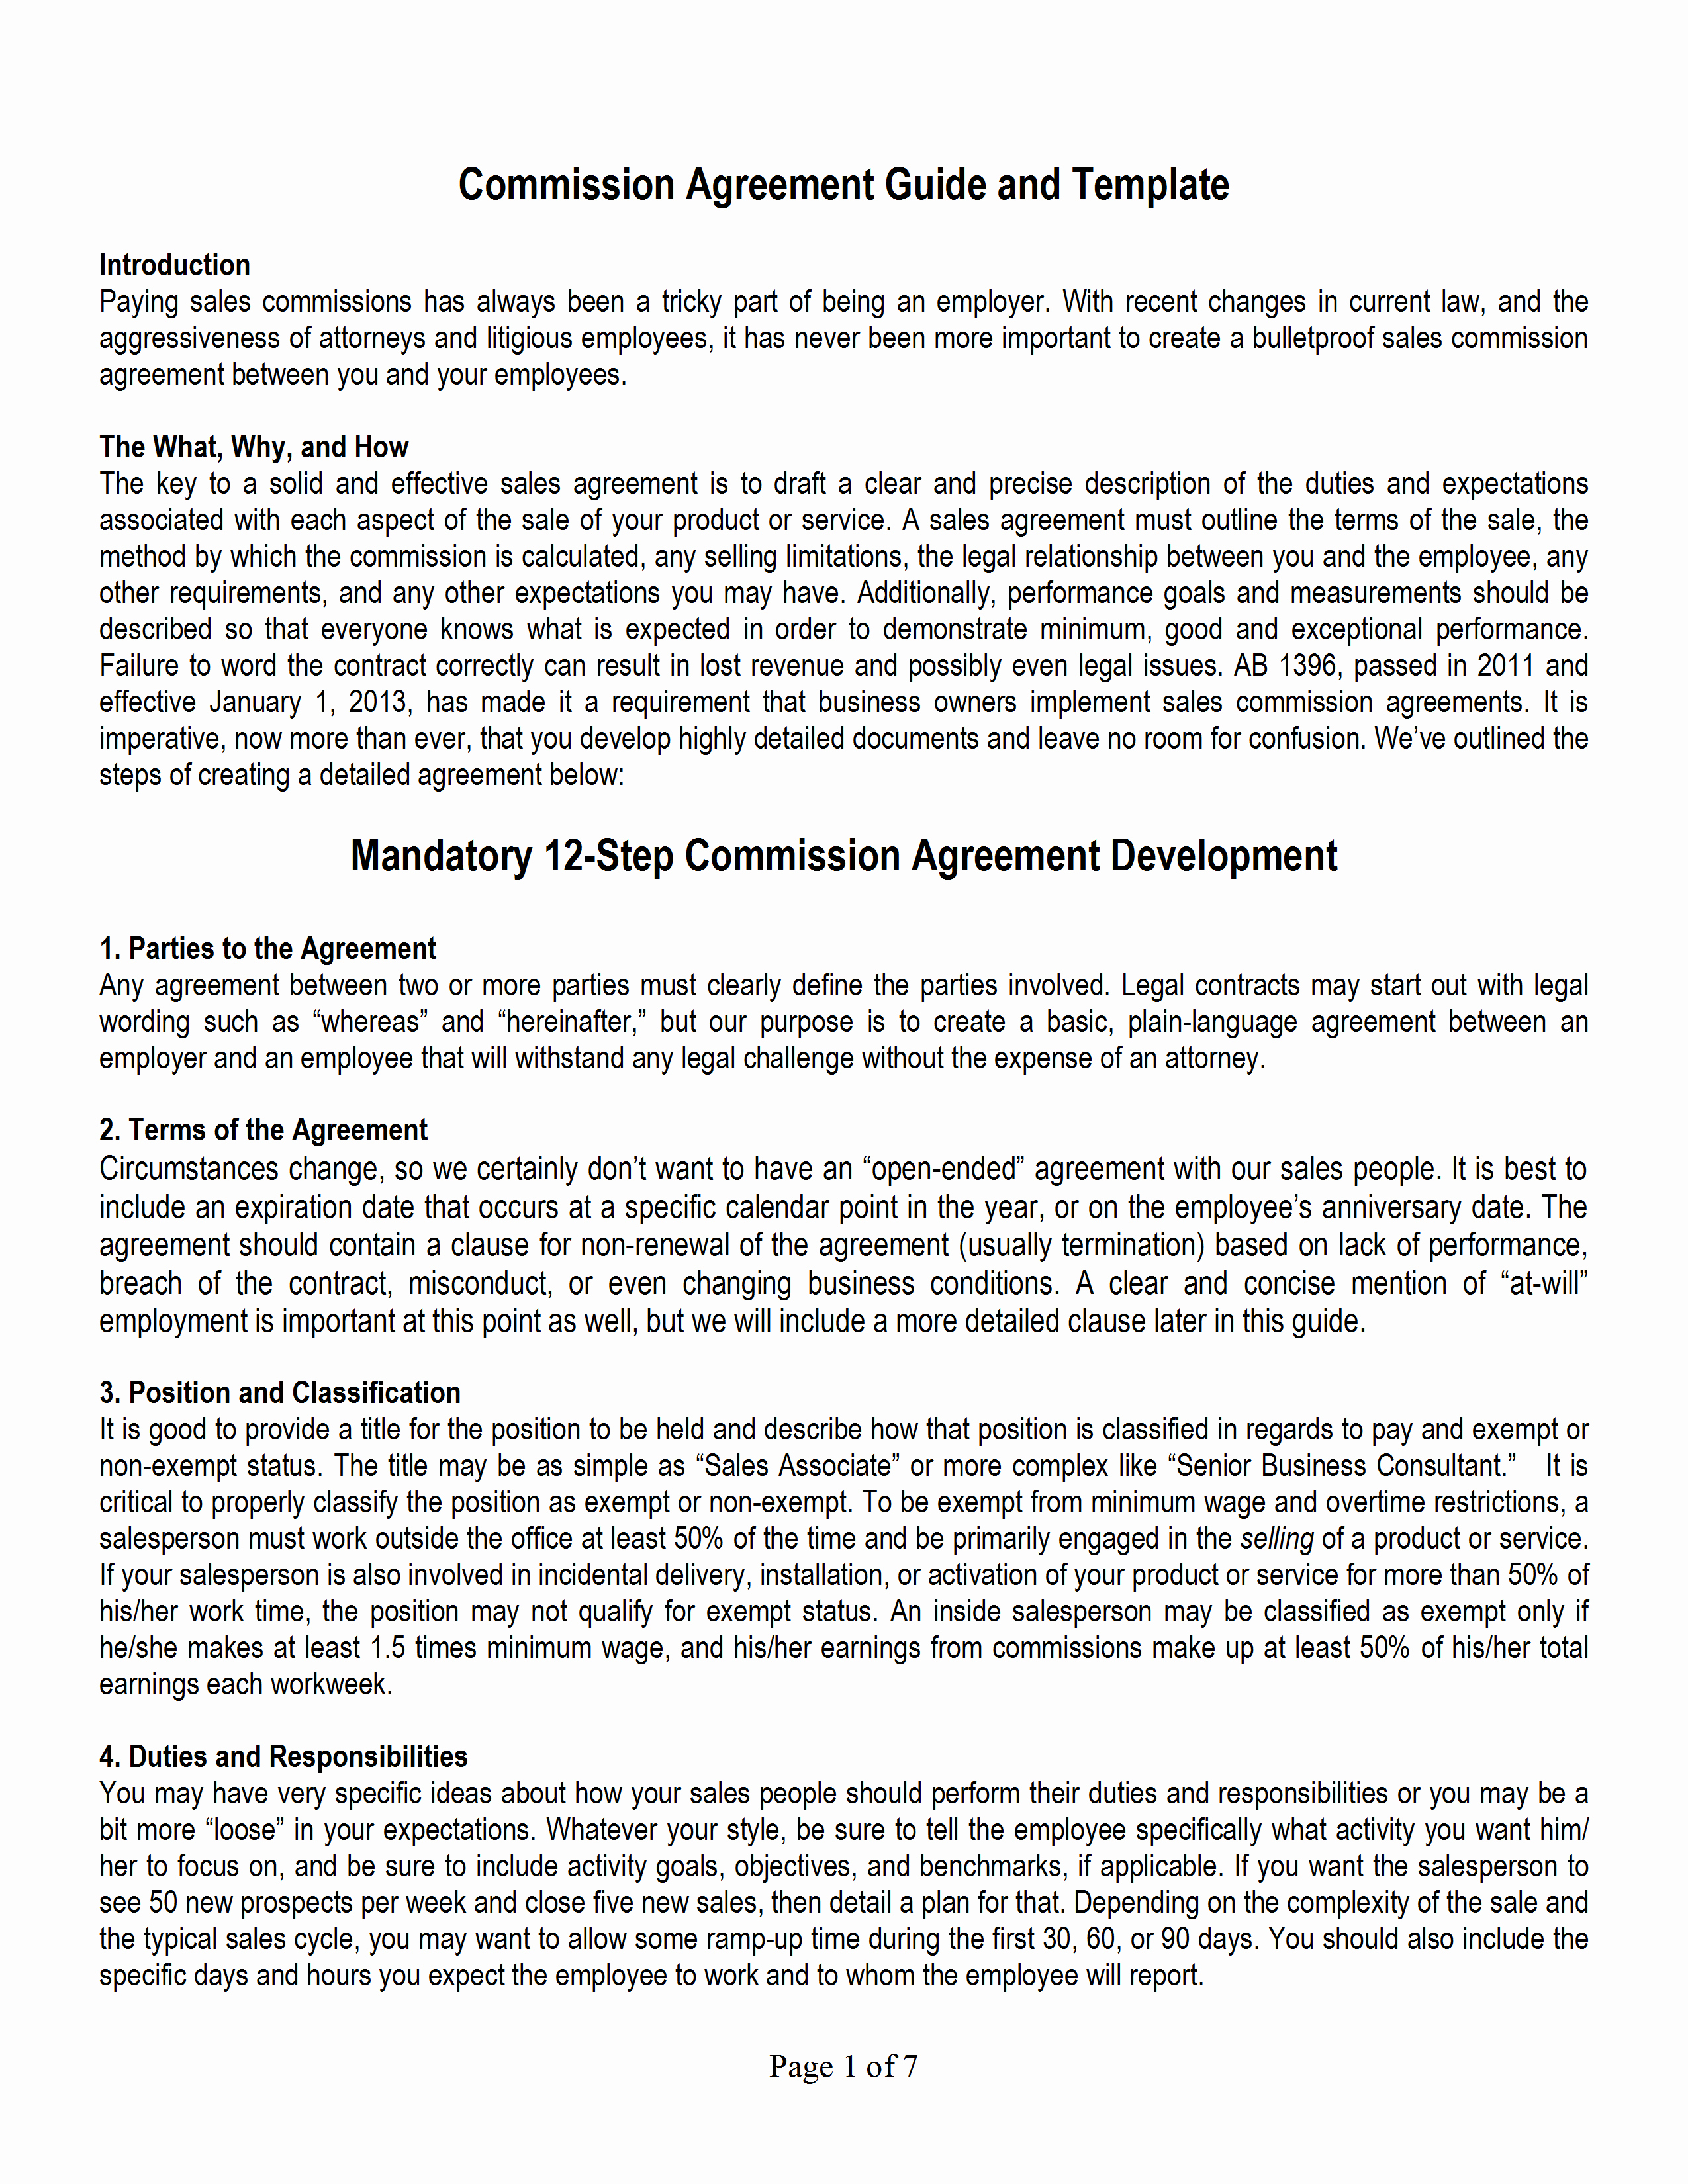 Sales Commission Agreement Template Awesome Sales Mission Agreement Template